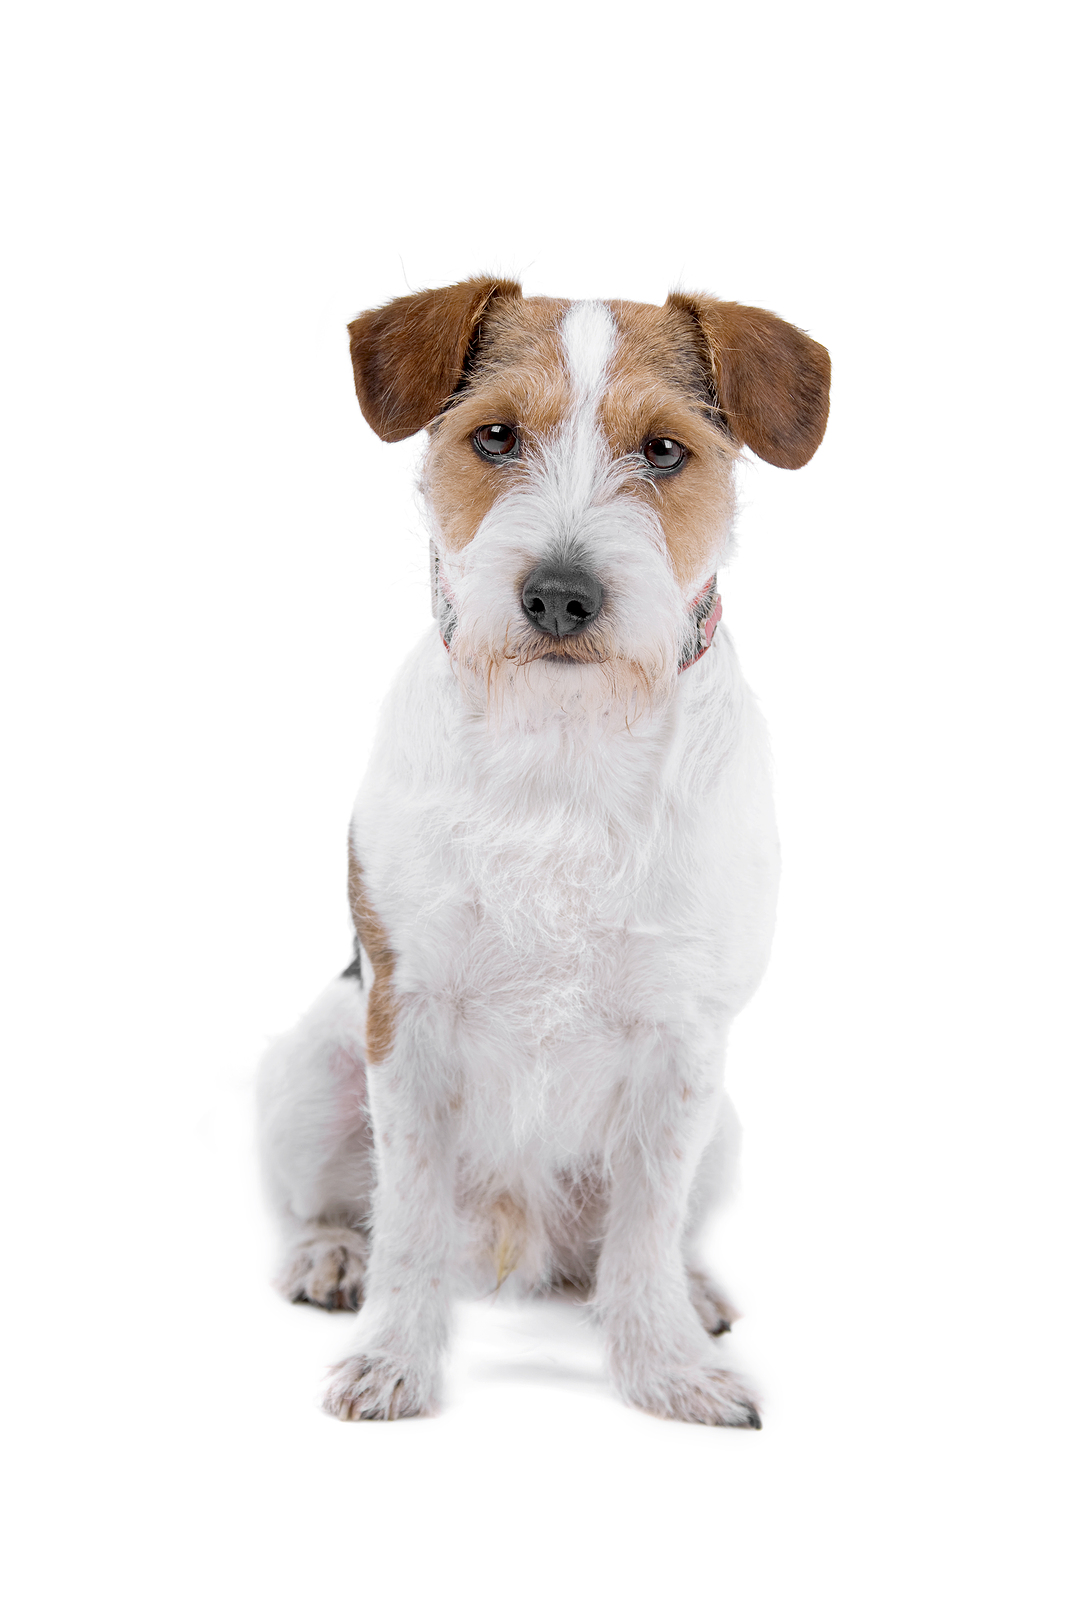 Jack Russell Terrier Breed Info - Happy Jack Russell